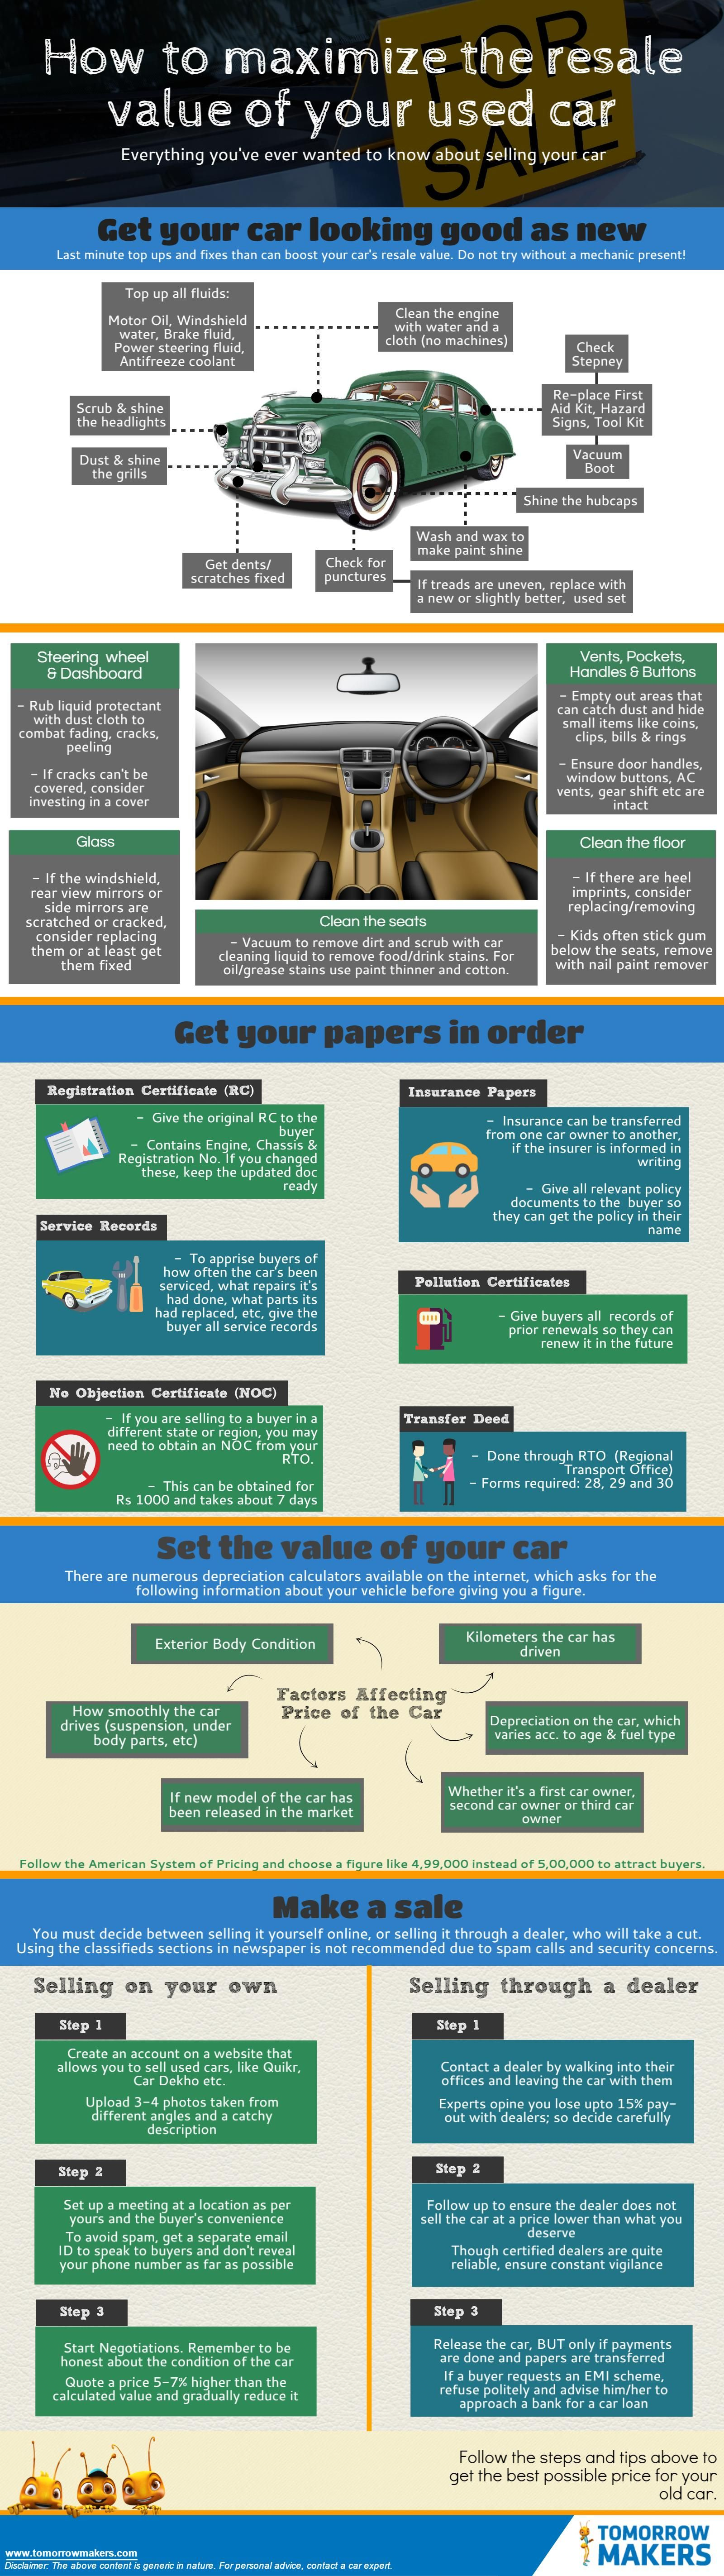 How To Maximize The Resale Value Of Your Used Car Infographic